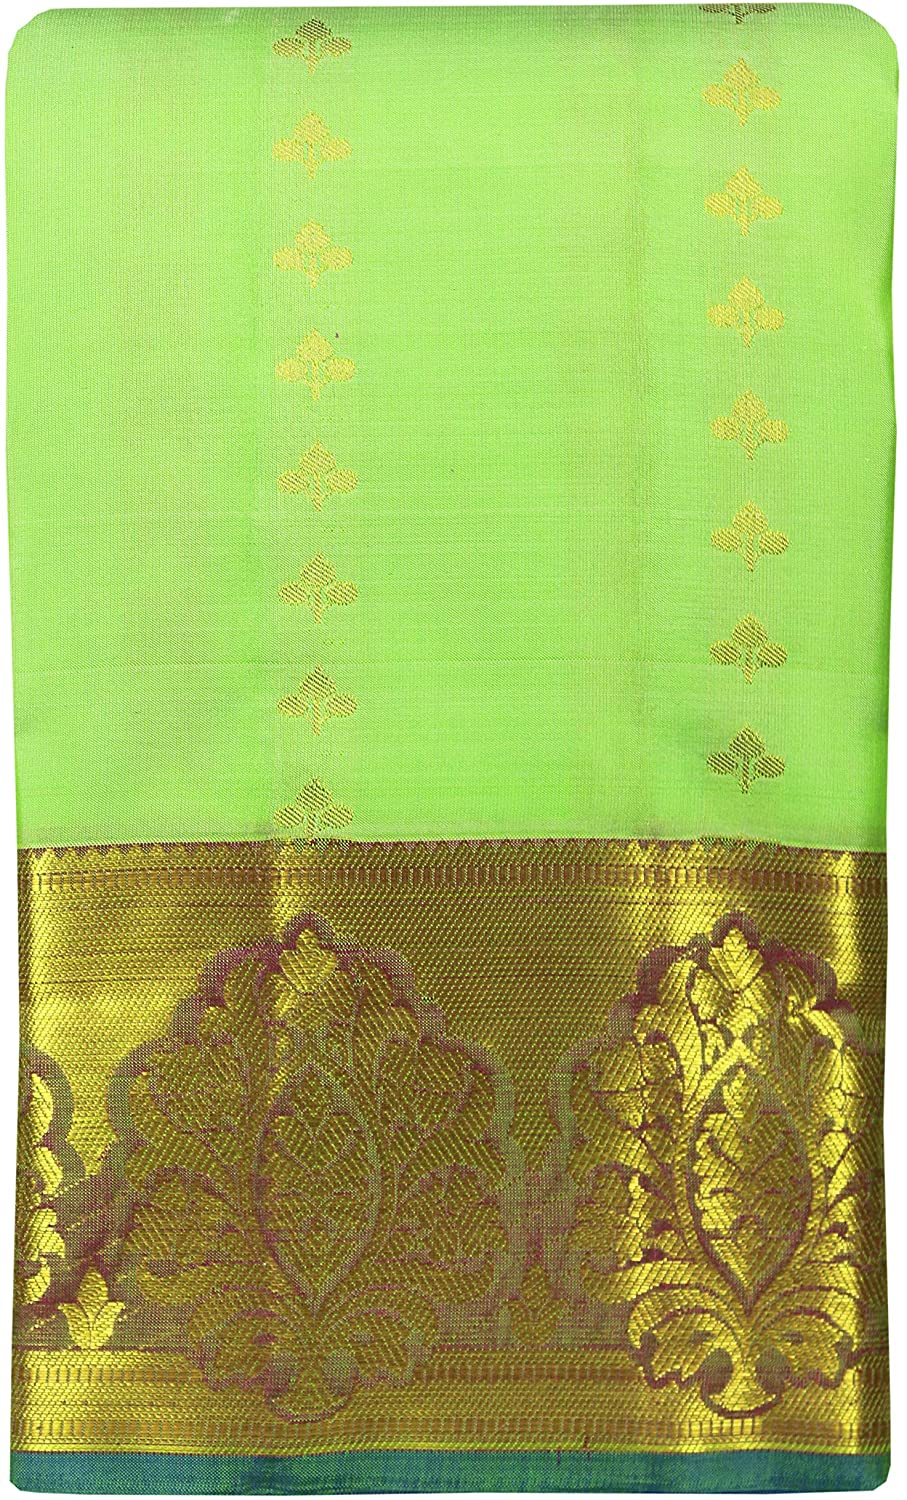 SARAVANABAVA SILKS Women's Kanchipuram Pure Pattu or Silk Sarees Tradition Jari Border Body Butta (SRBS00P492)